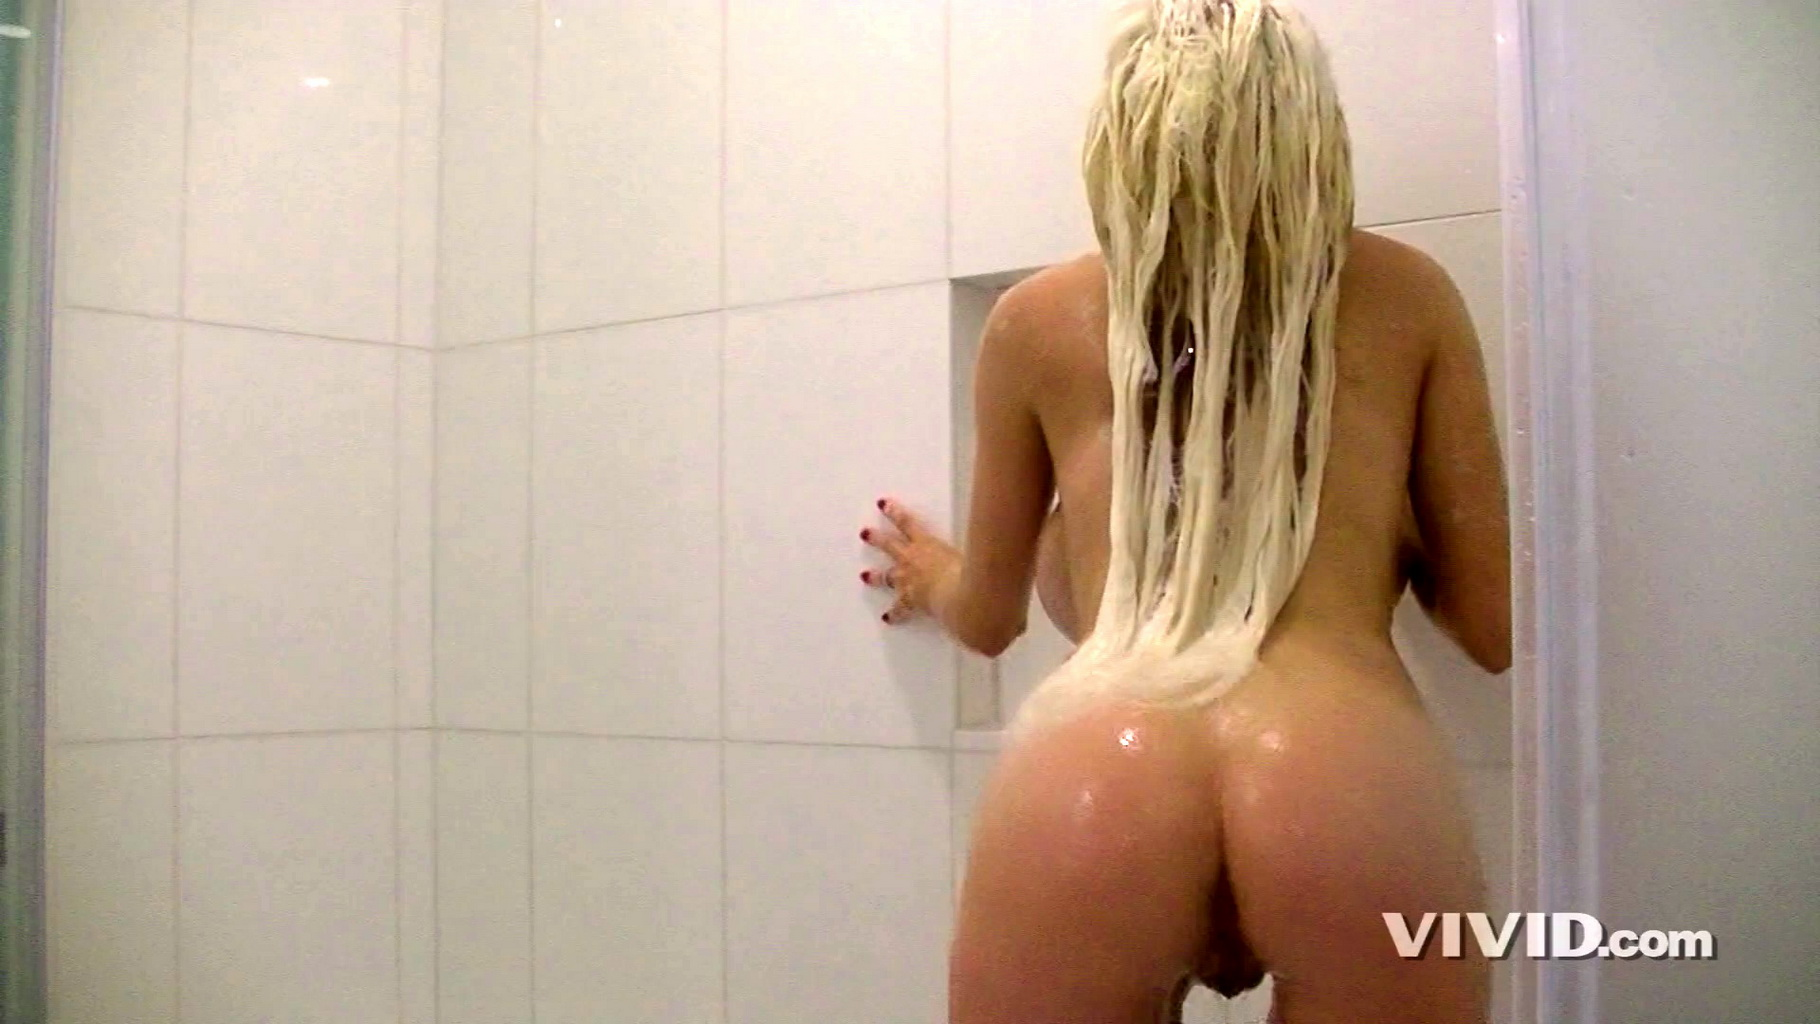 courtney stodden nudes